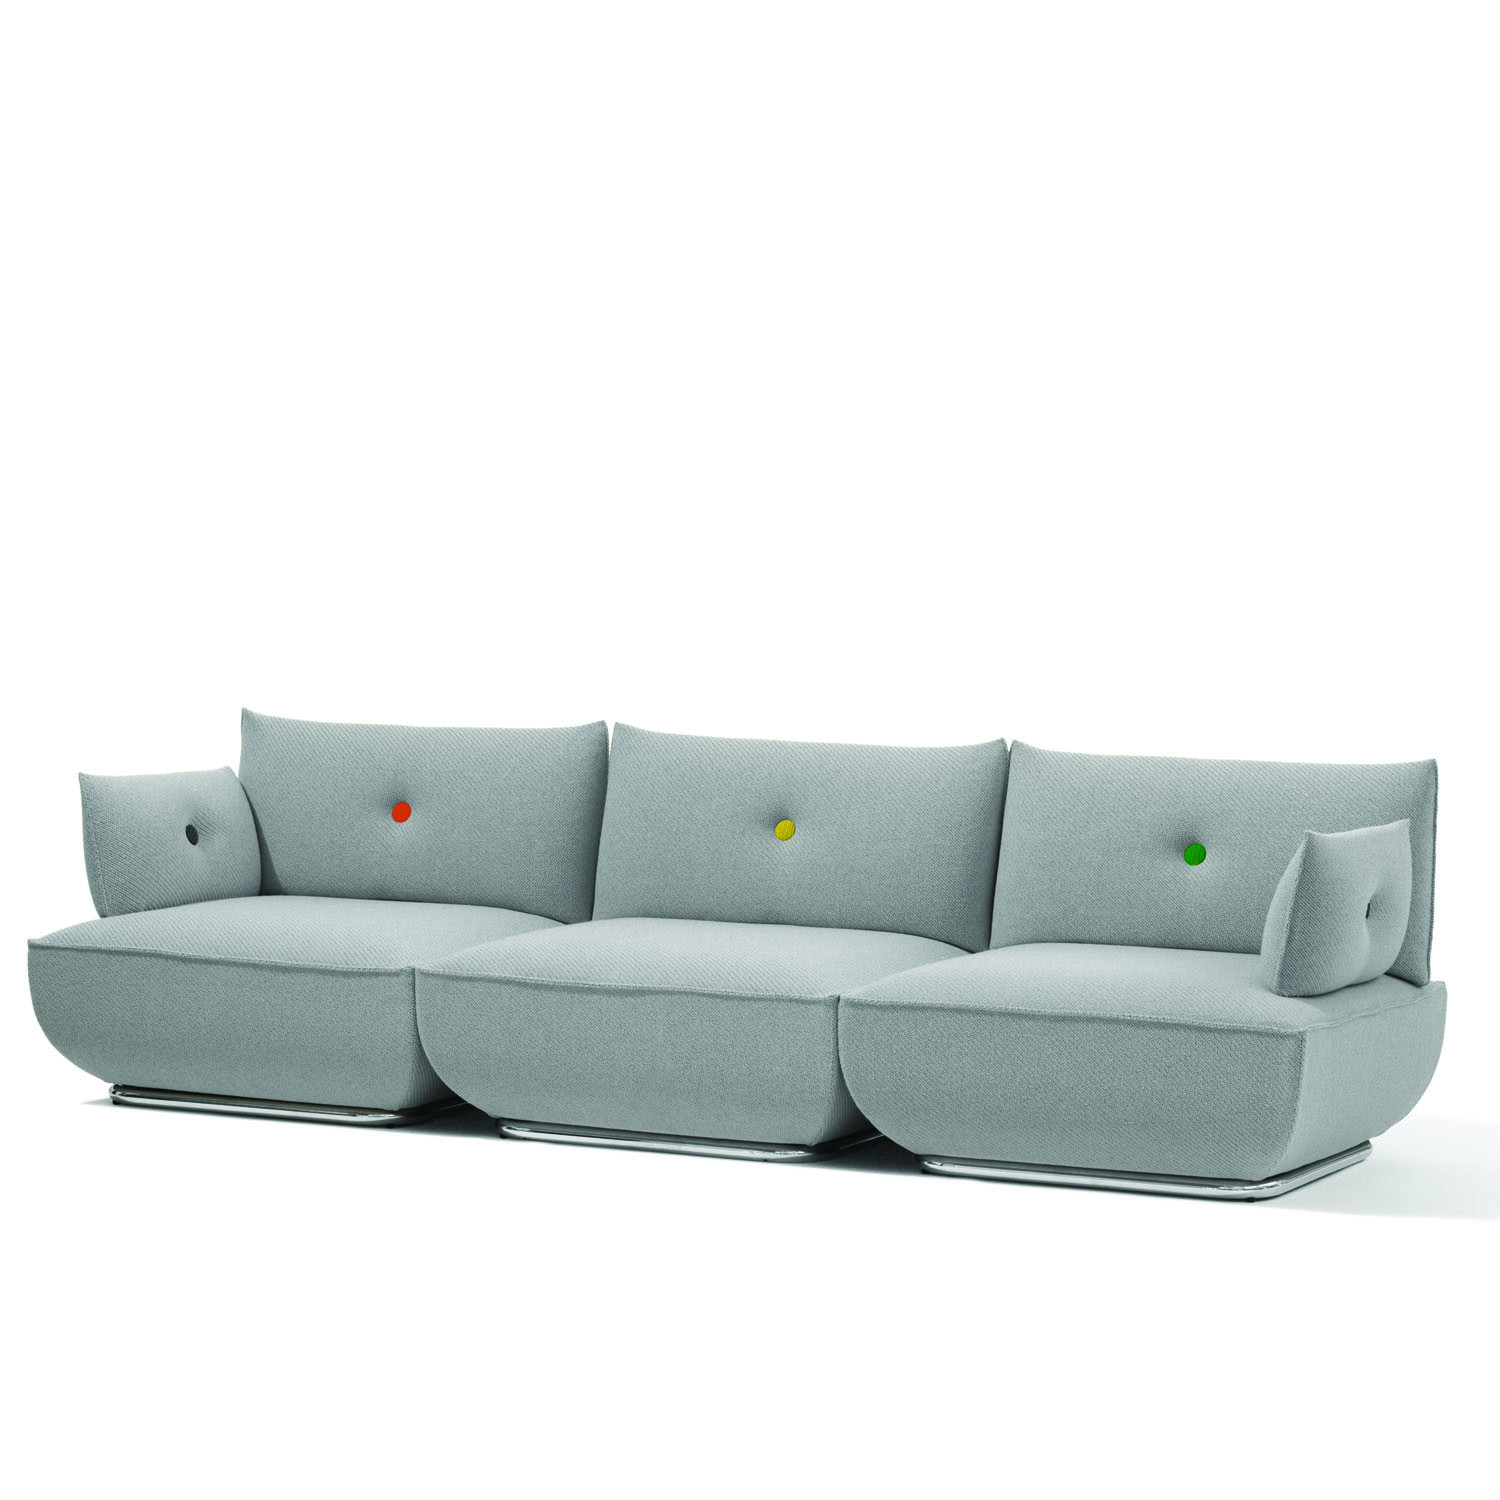 Dunder Three Seat Sofa S60